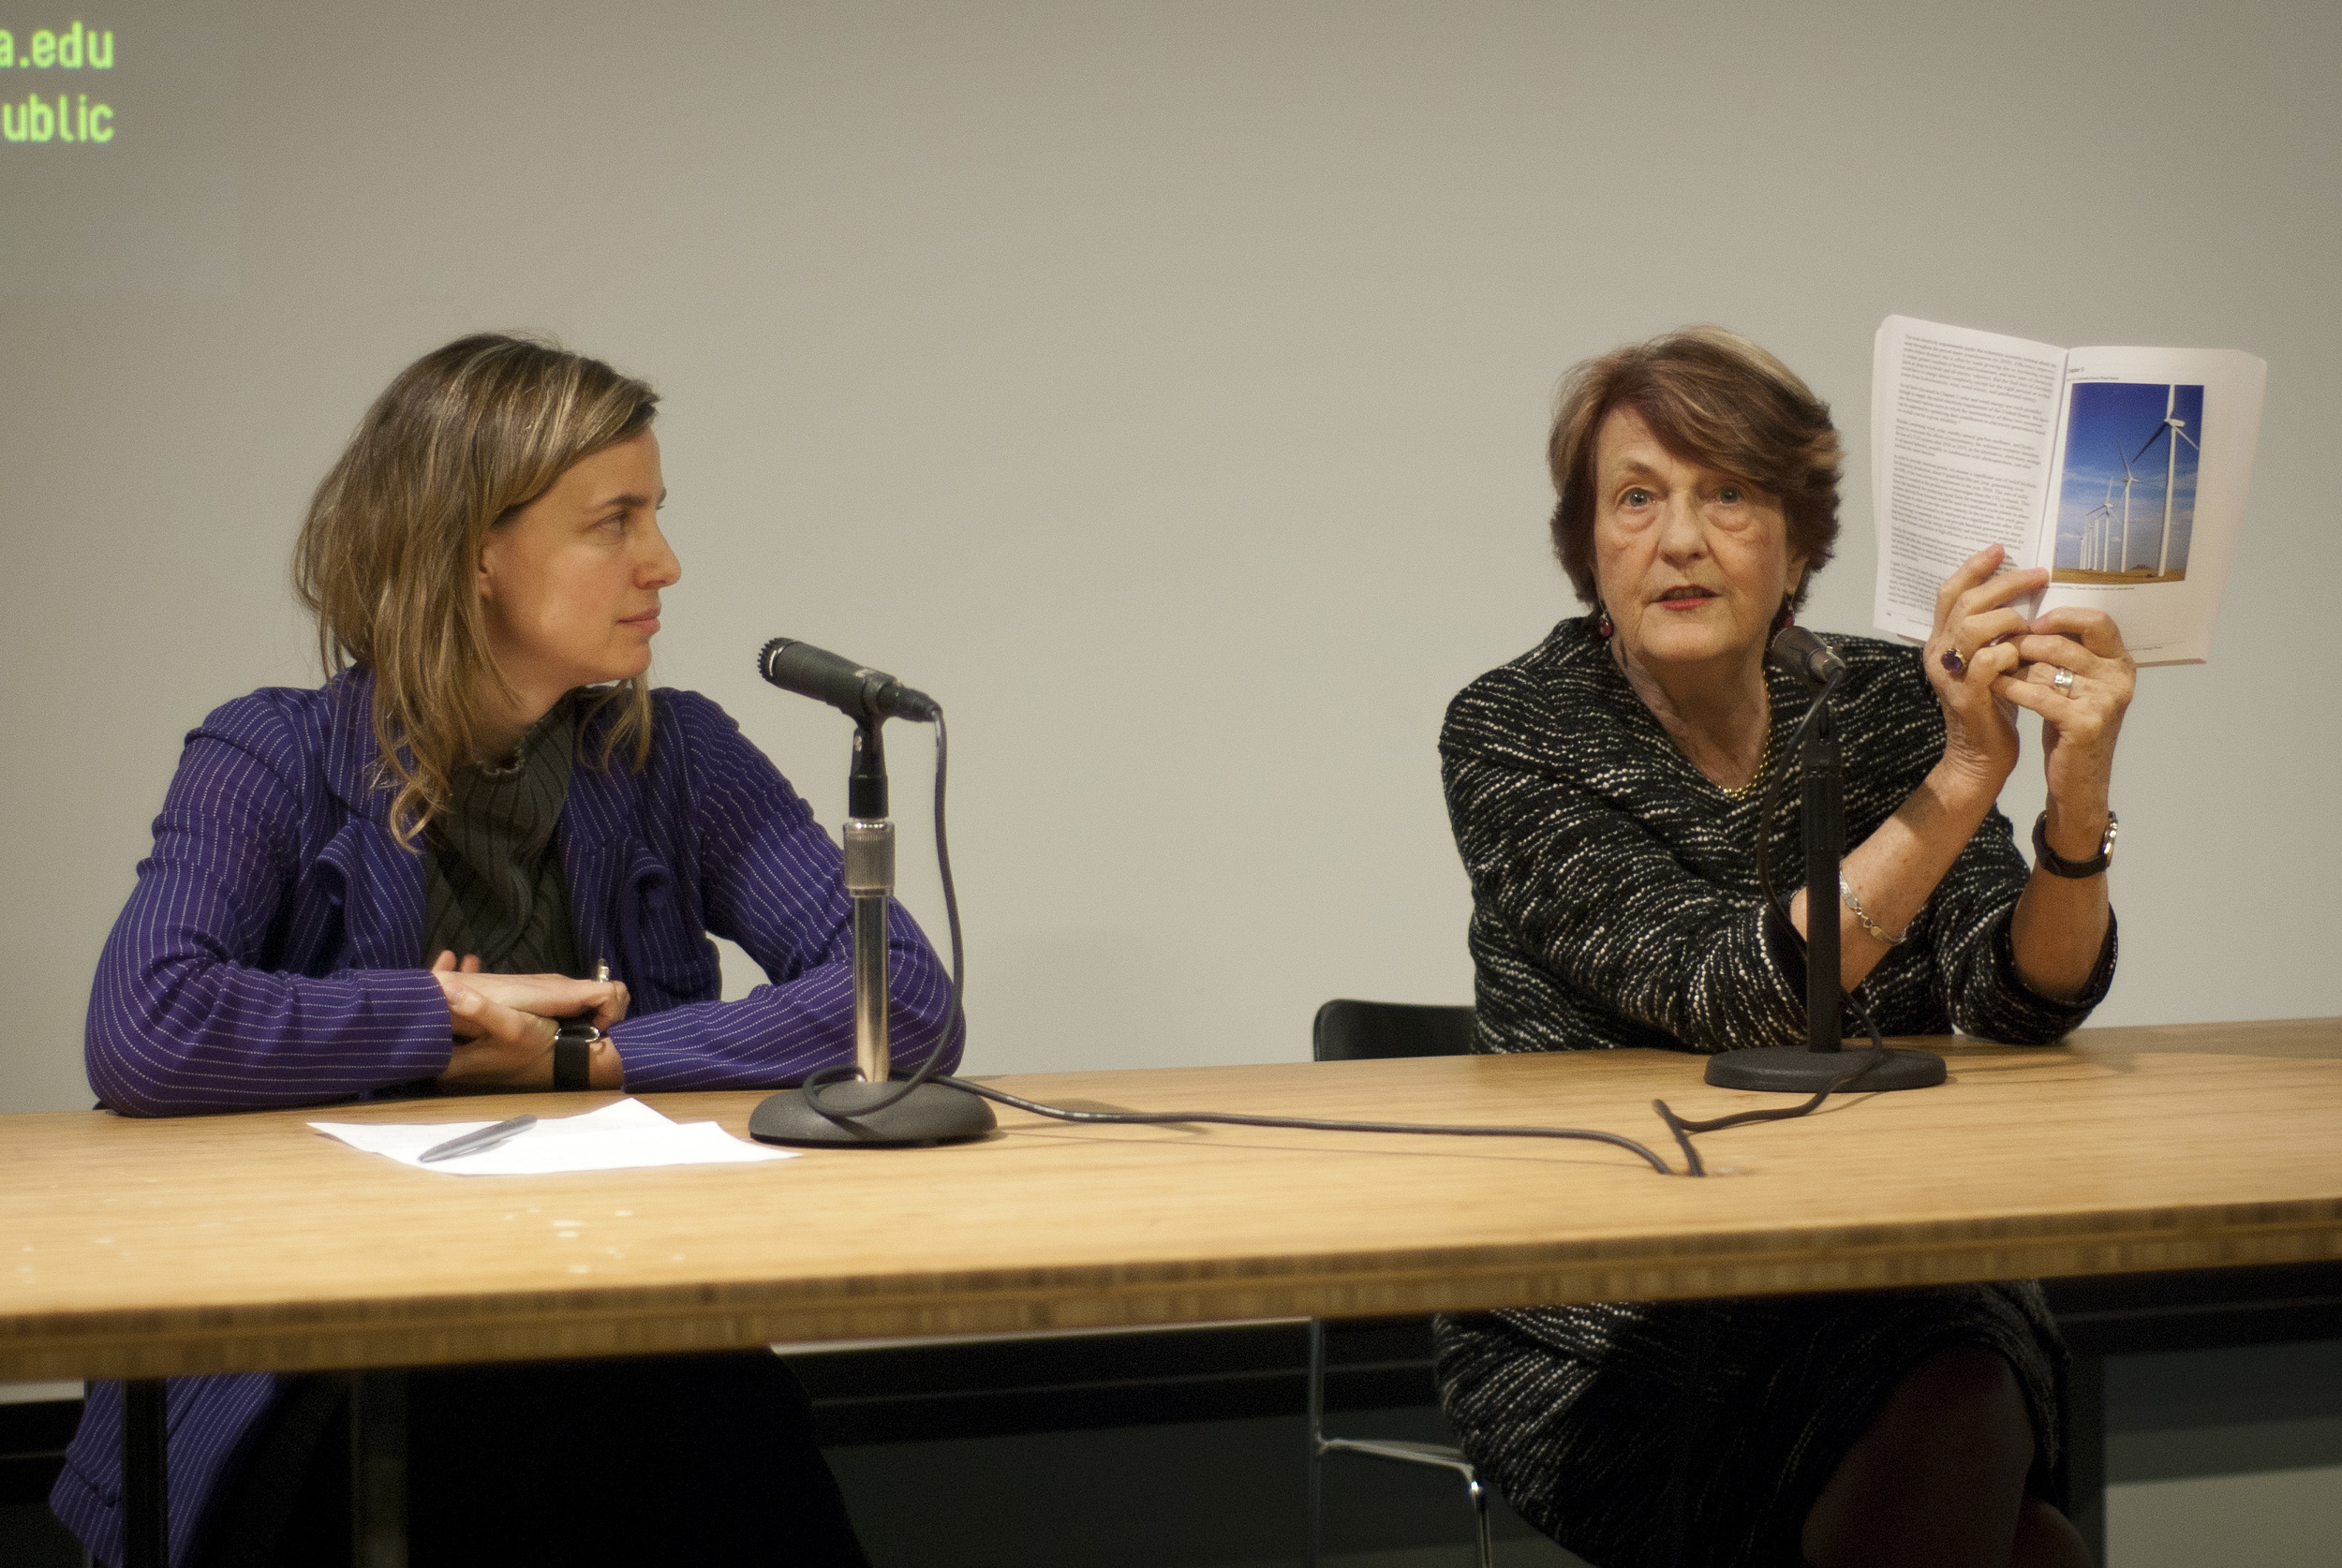 Dr. Helen Caldicott and Kate Orff, April 2, 2012, Wood Auditorium, Columbia University.